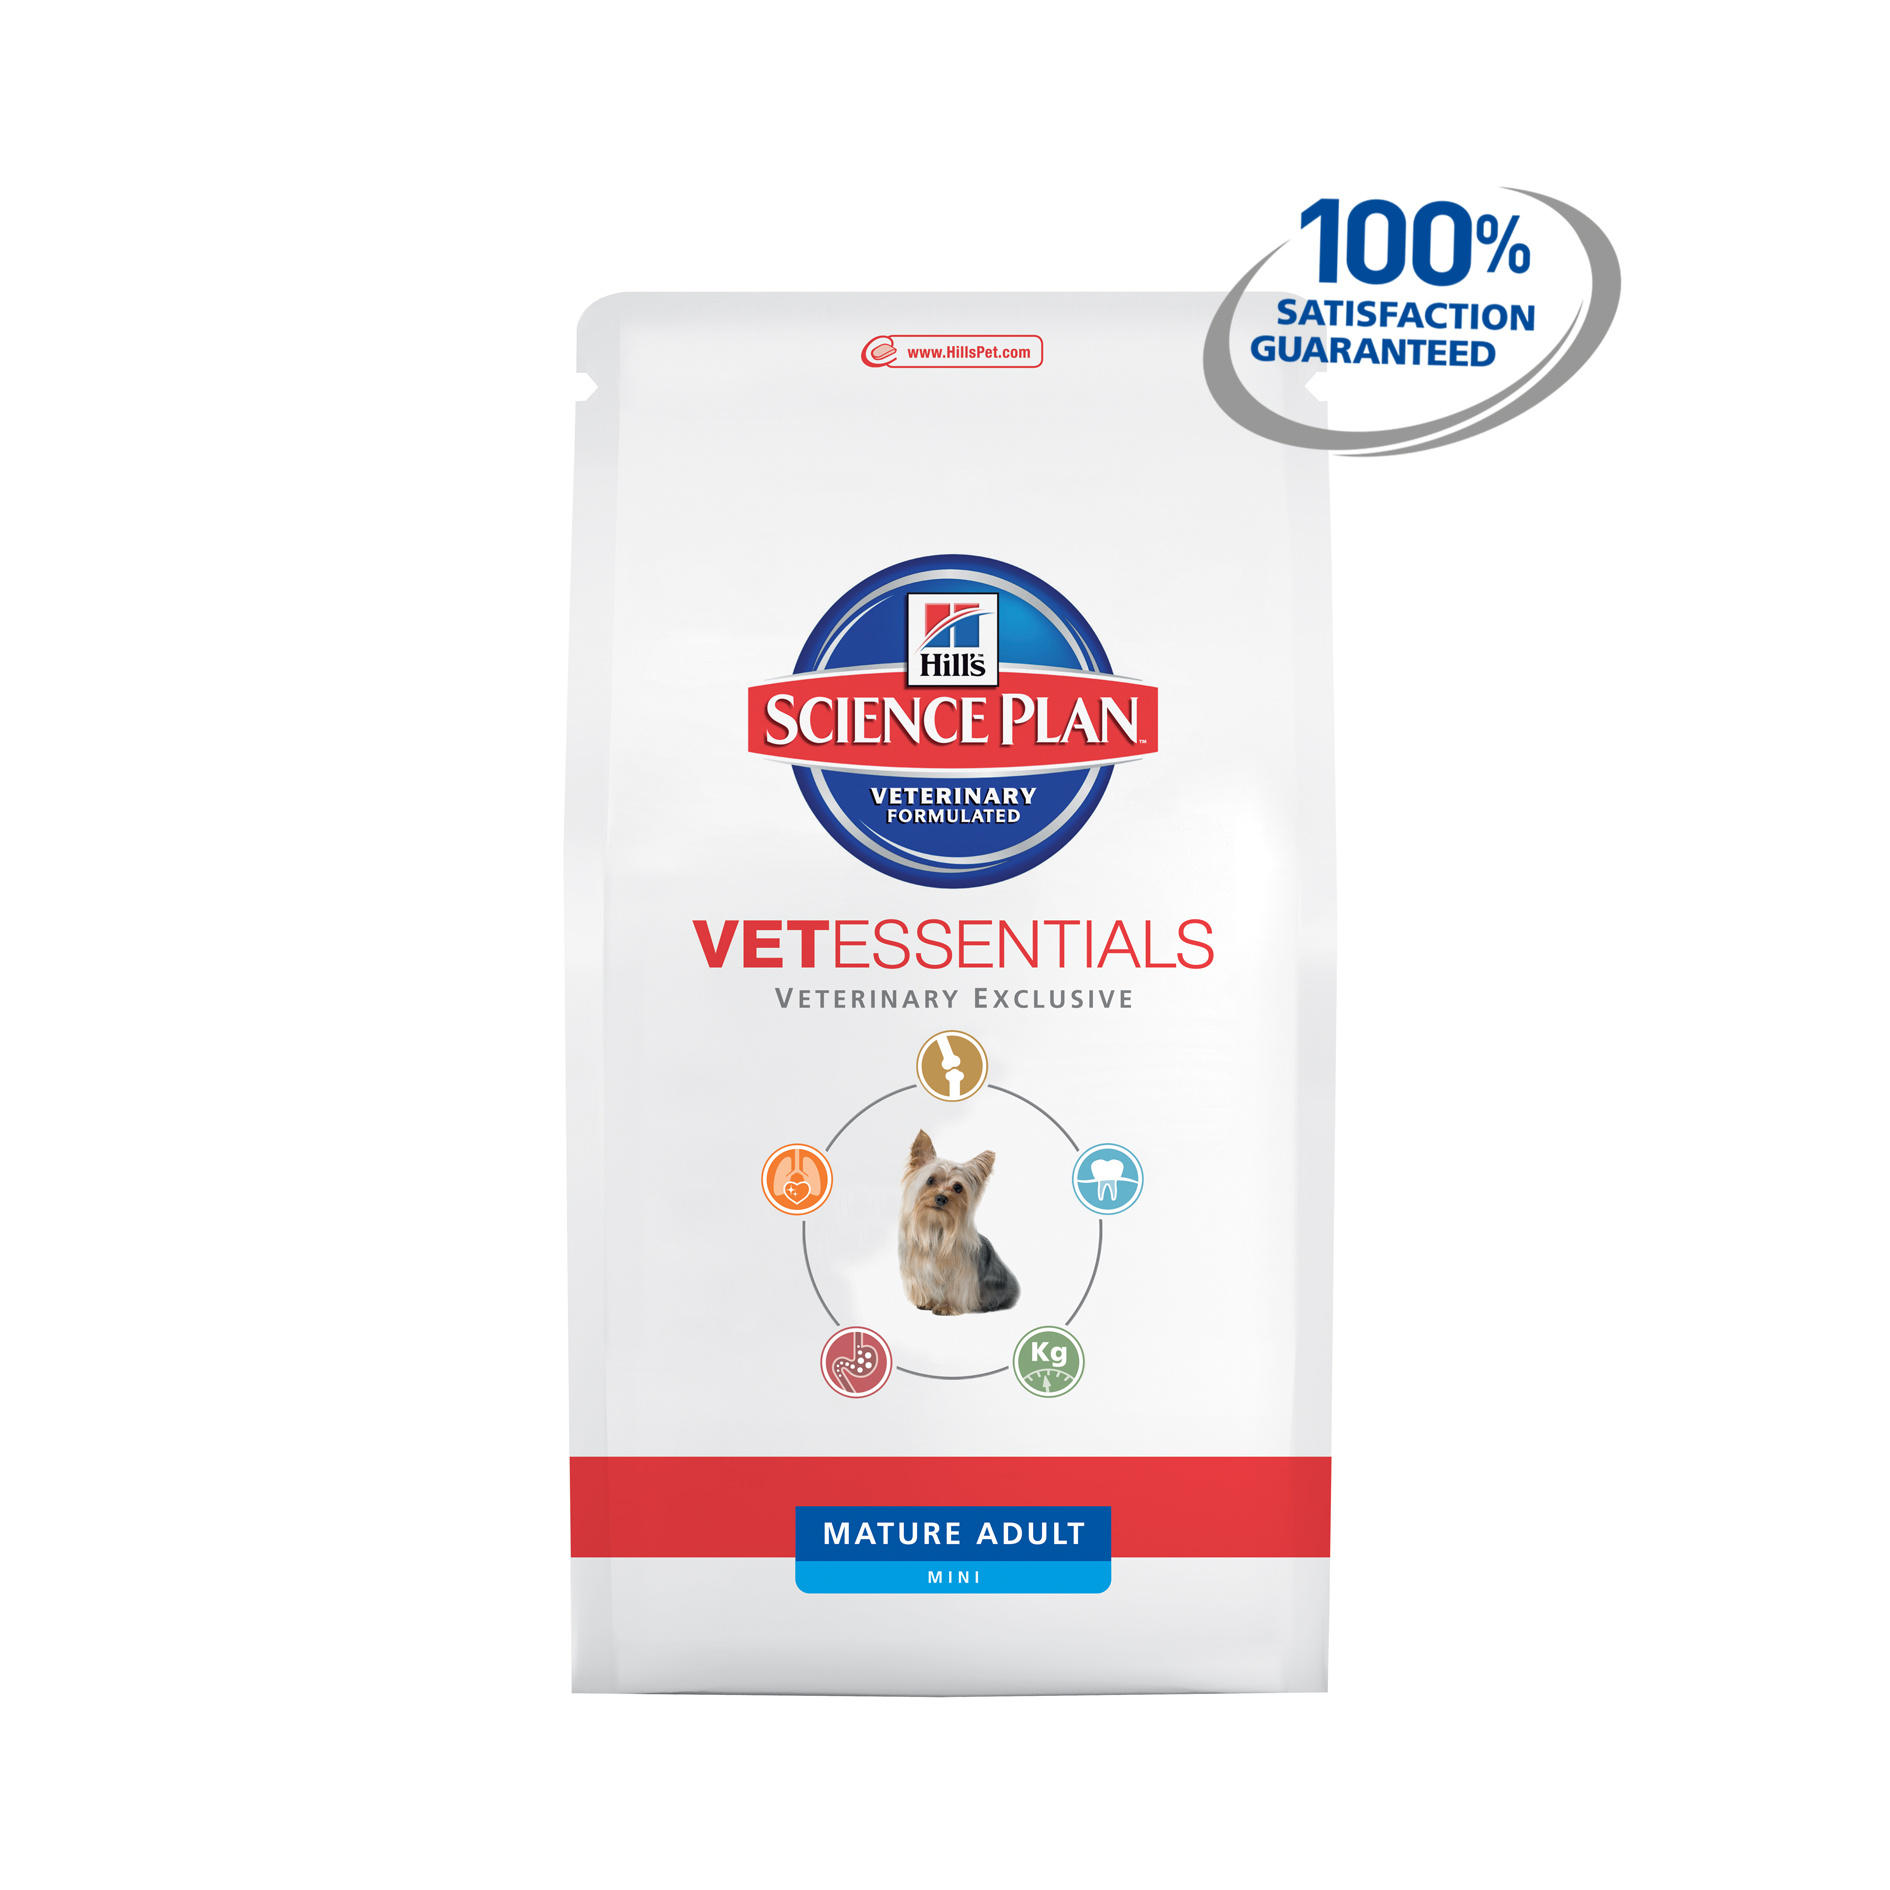 Hills Science Plan Vet Essentials Mature Canine Mini Chicken